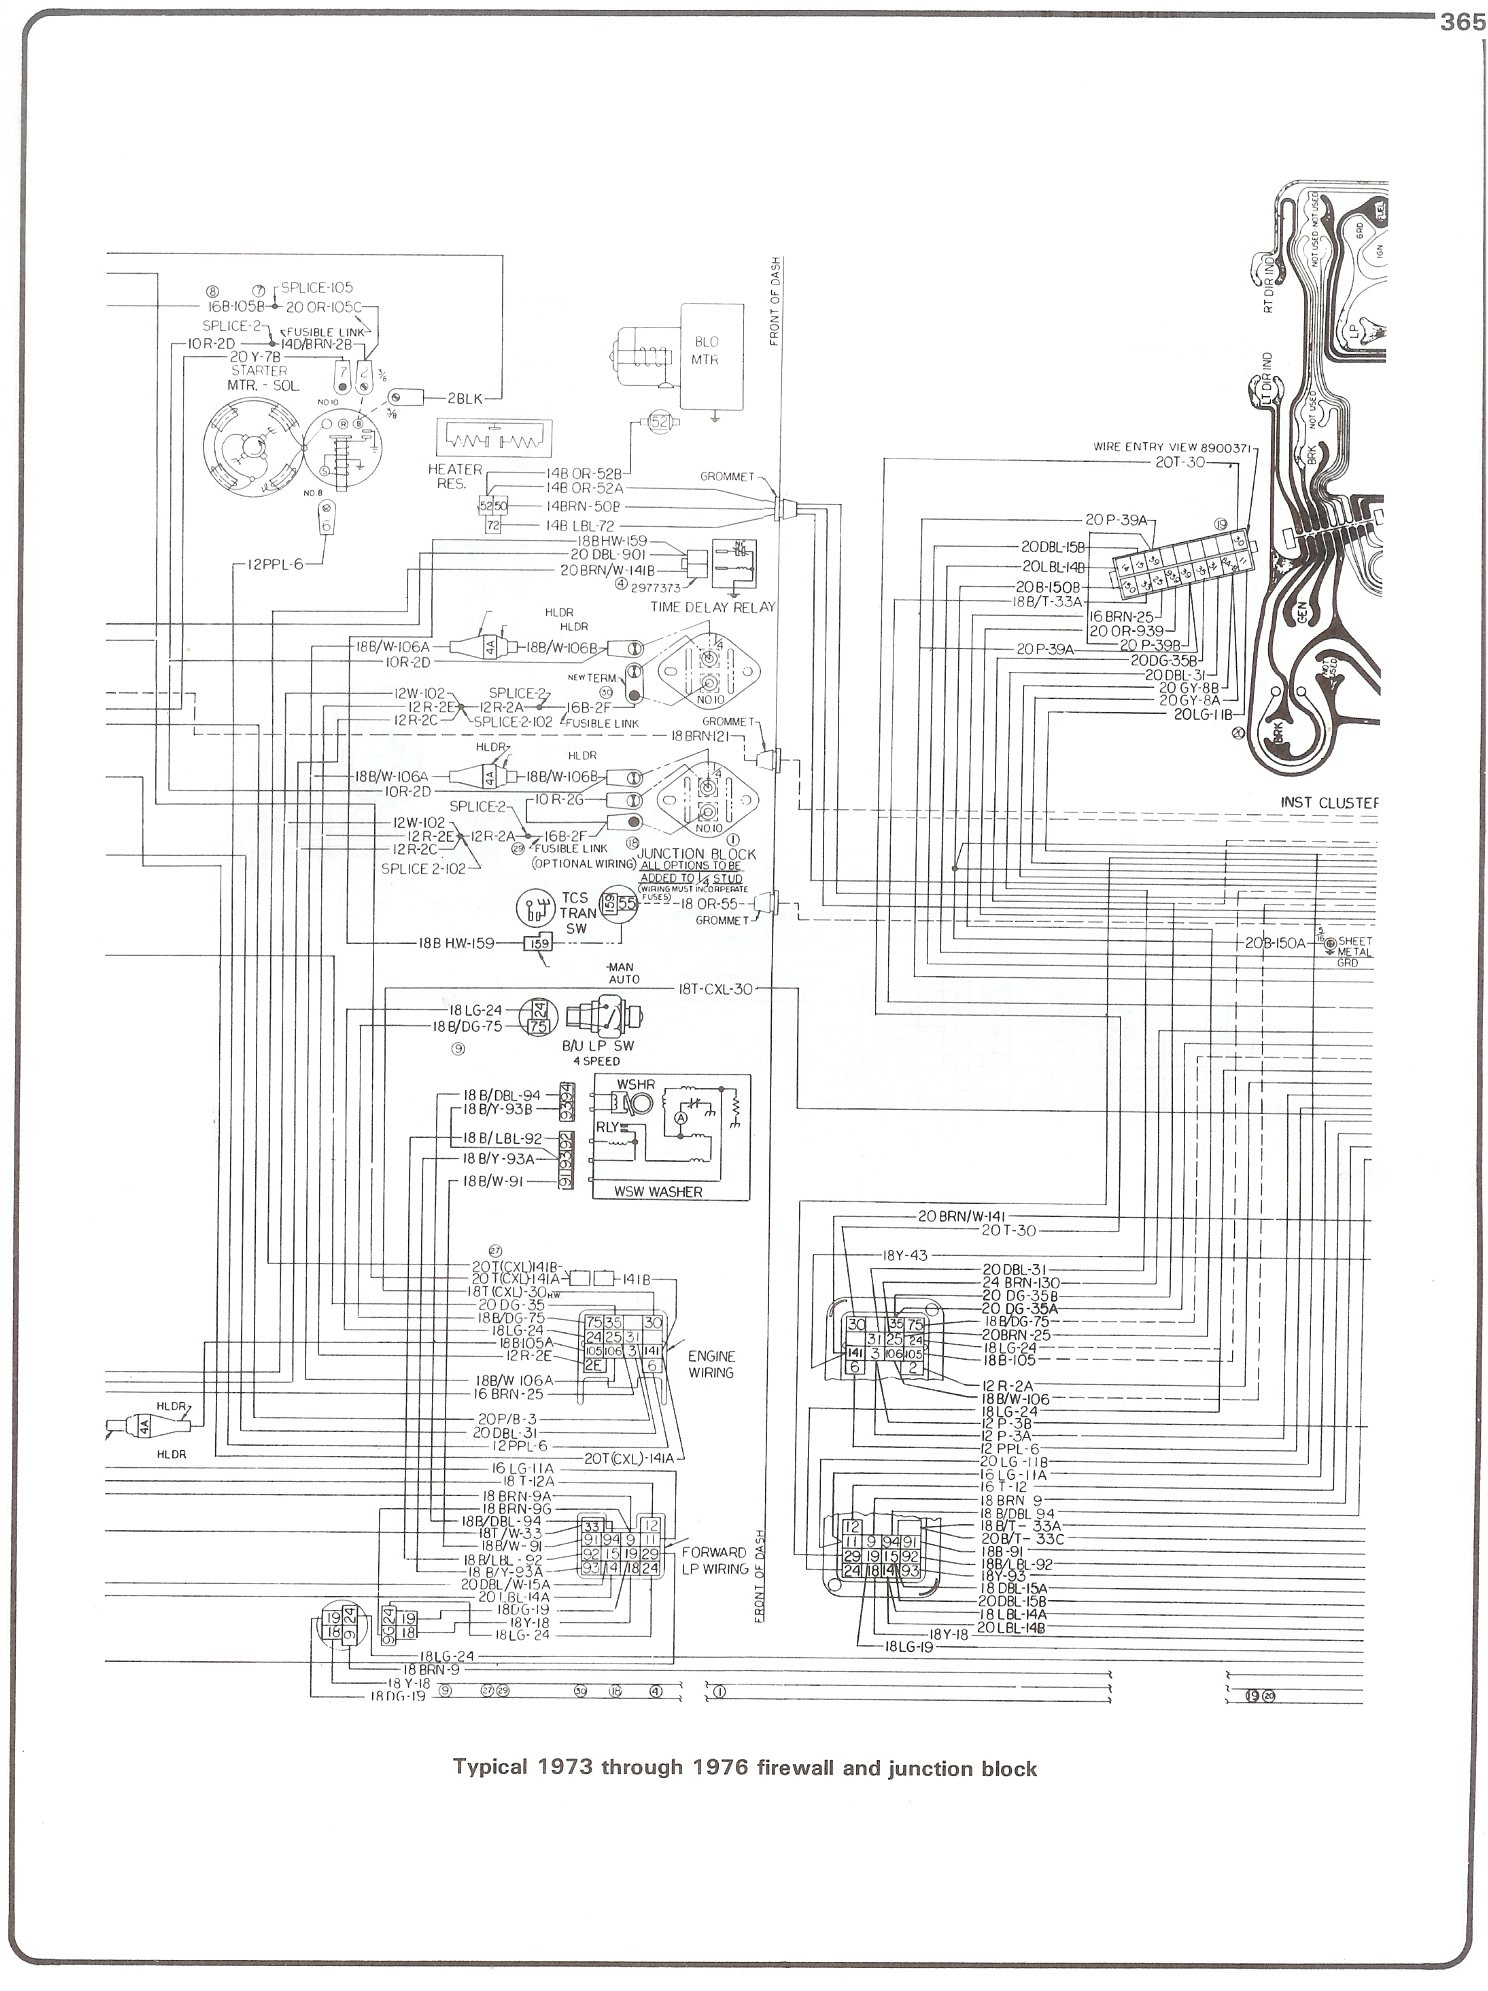 73 76_firewall_junct complete 73 87 wiring diagrams 1978 chevy truck fuse box diagram at edmiracle.co